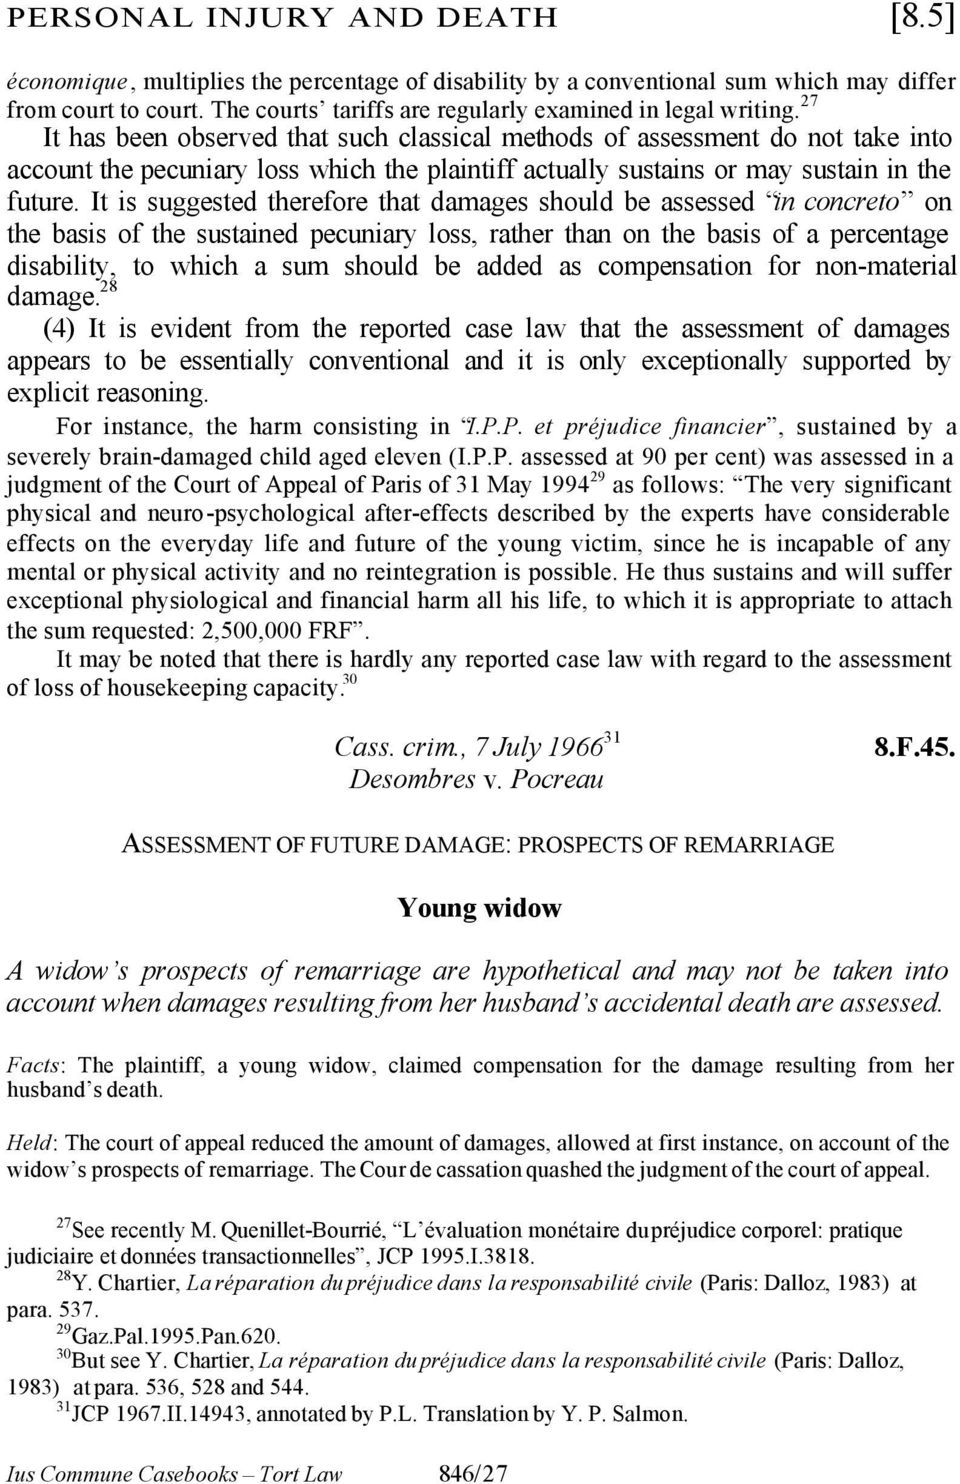 27 It has been observed that such classical methods of assessment do not take into account the pecuniary loss which the plaintiff actually sustains or may sustain in the future.